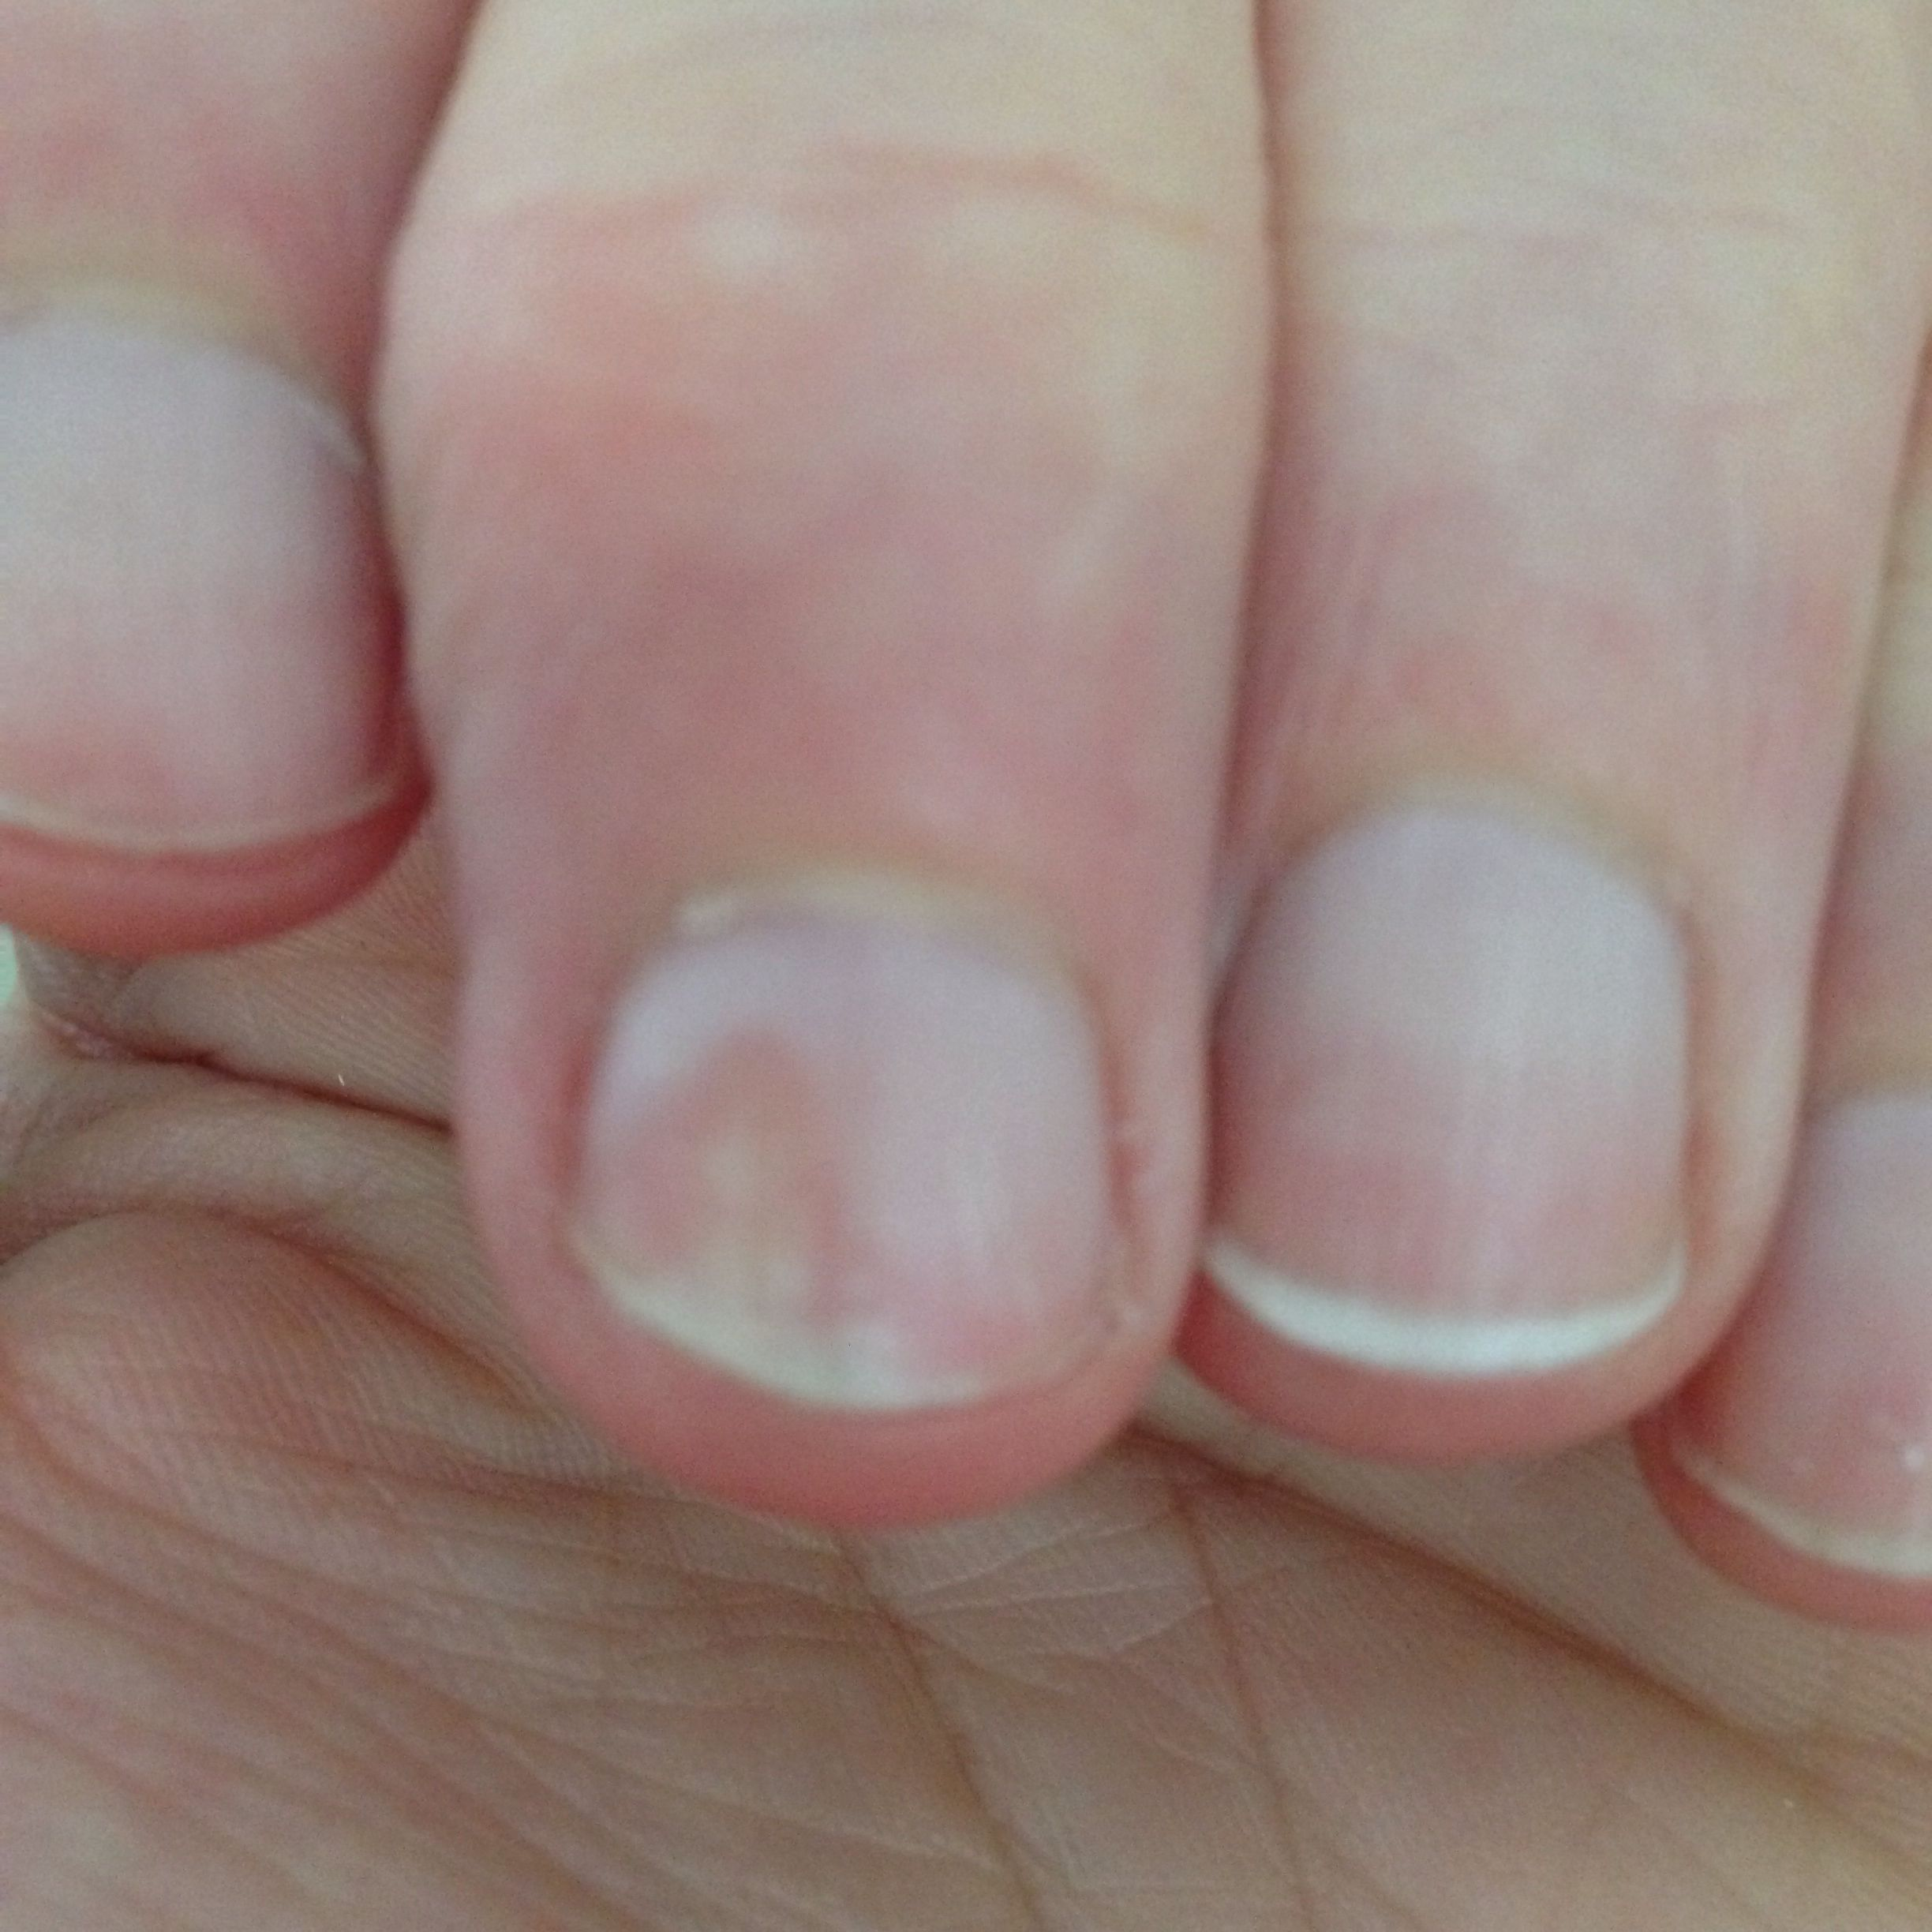 Nail Pulling Away From Nail Bed Psoriatic Arthritis With Images